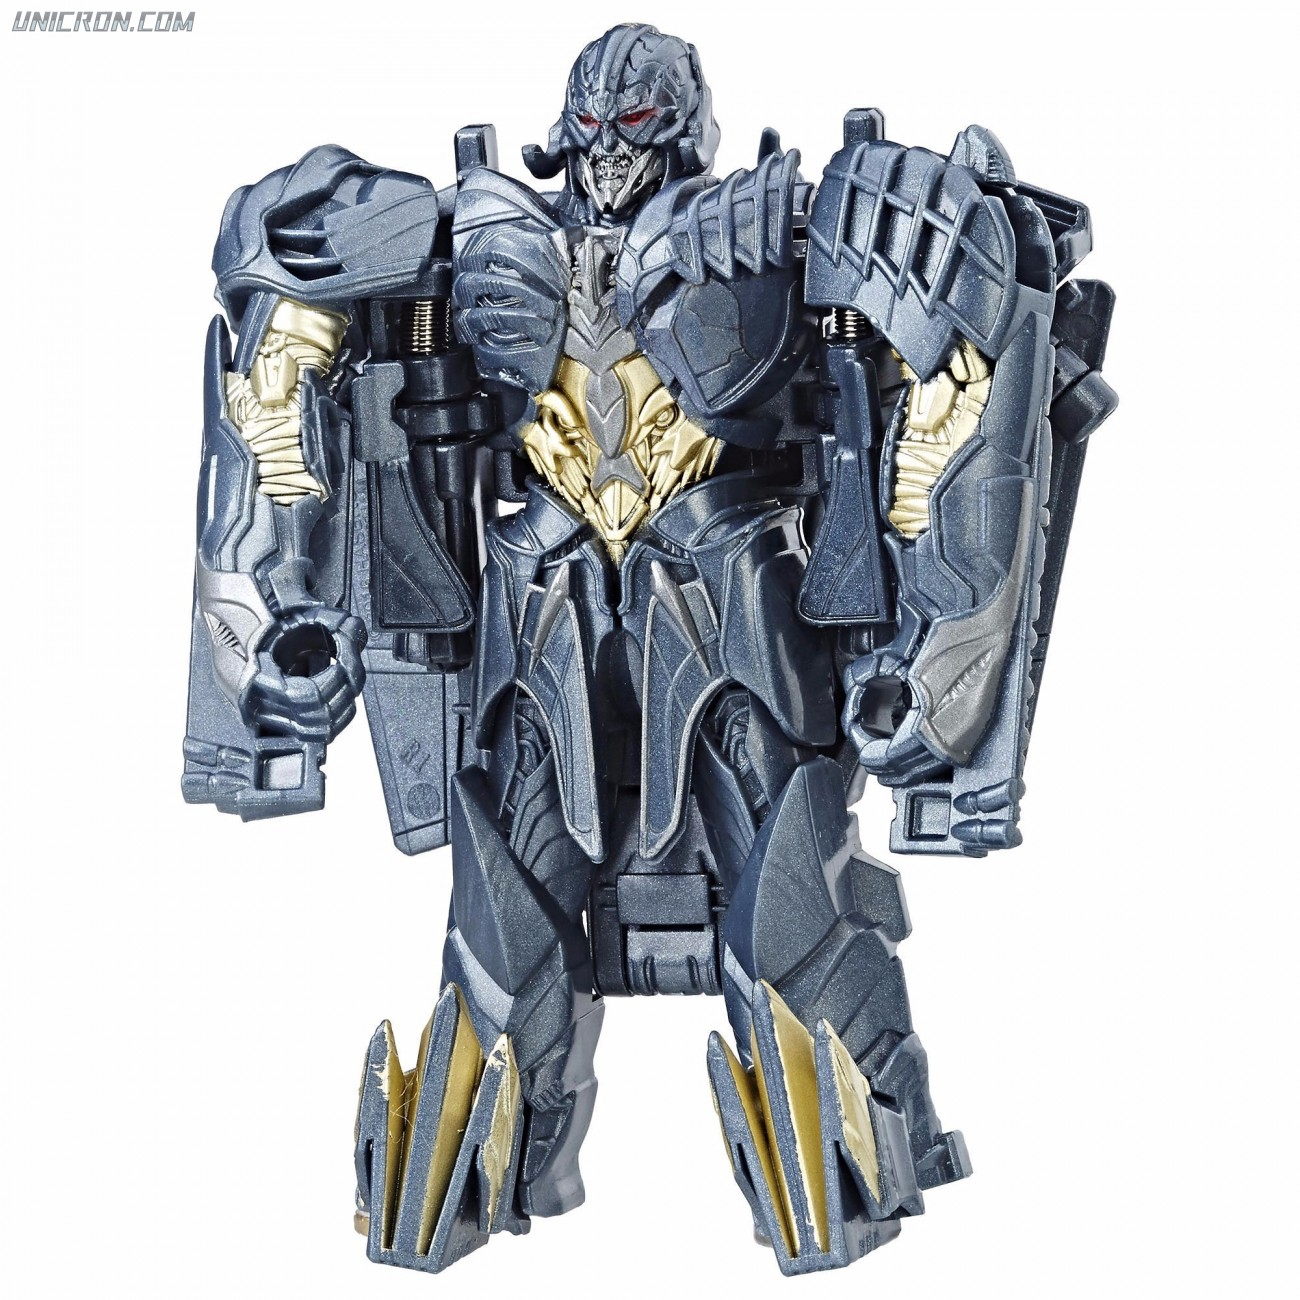 transformers 5 the last knight megatron tlk one step unicron com